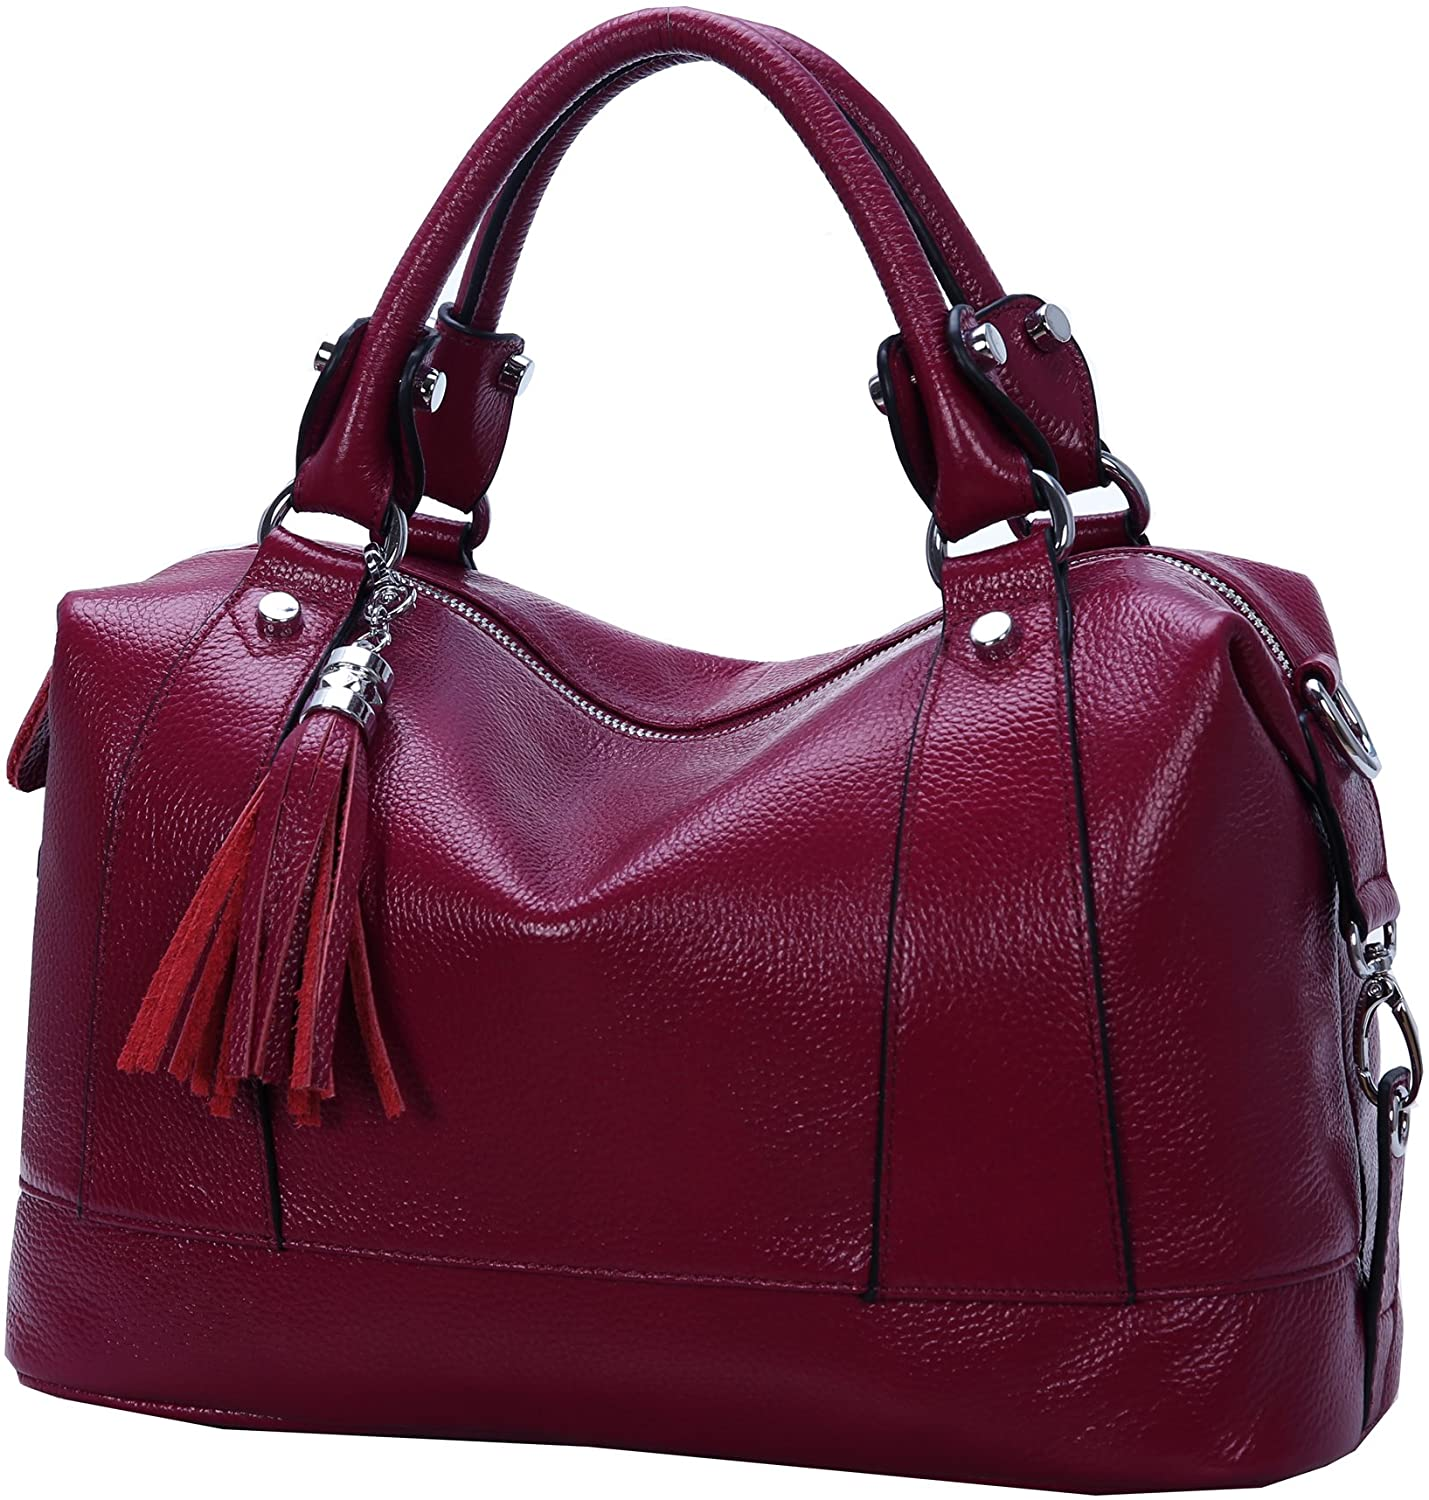 Heshe Leather Shoulder Bag Womens Tote Top Handle Handbags Cross Body Bags for Office Lady